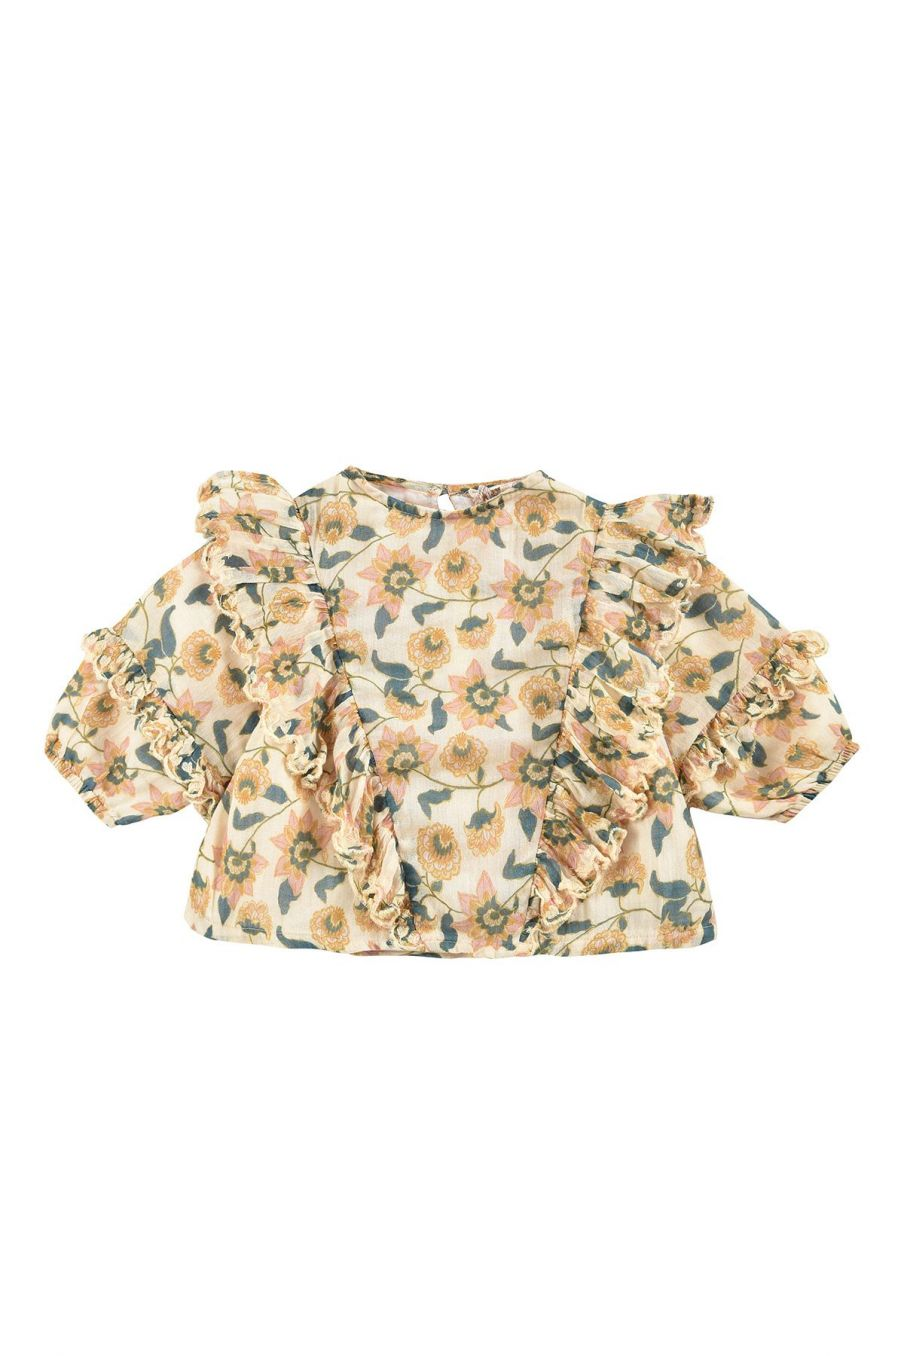 boheme chic vintage blouse bébé fille tubi cream flowers